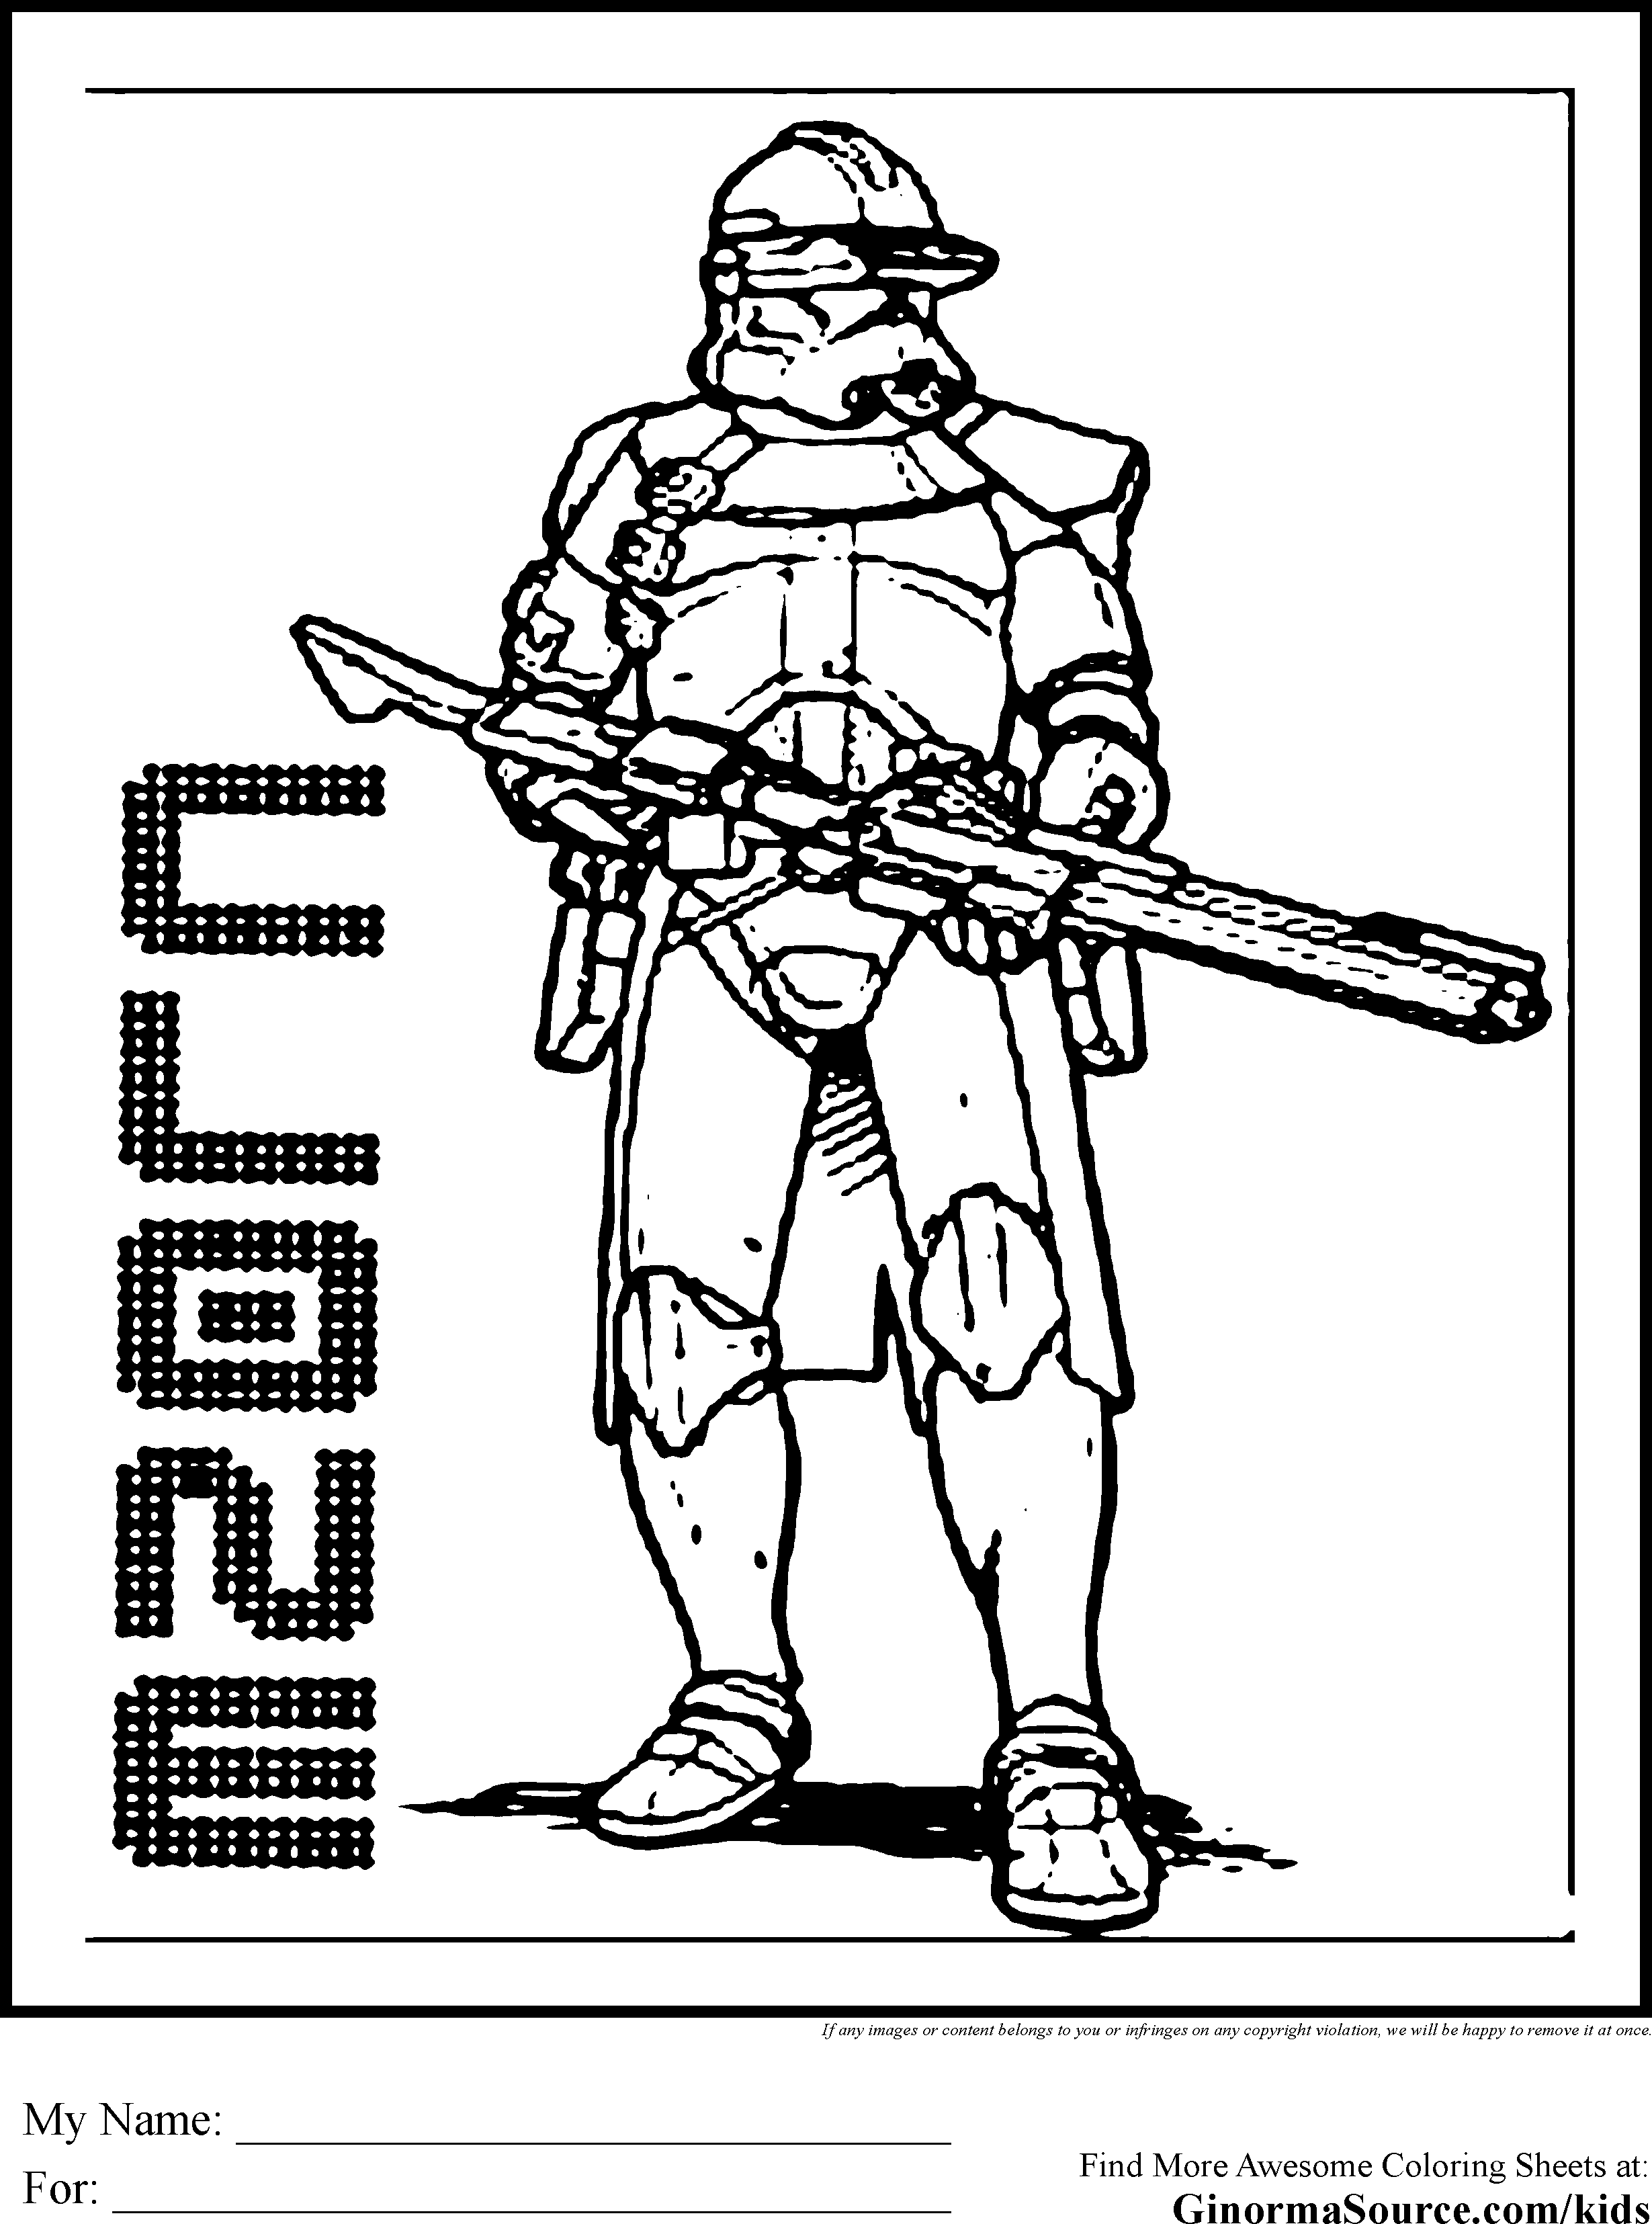 the clone wars coloring pages star wars clone wars coloring pages star wars coloring coloring the clone pages wars